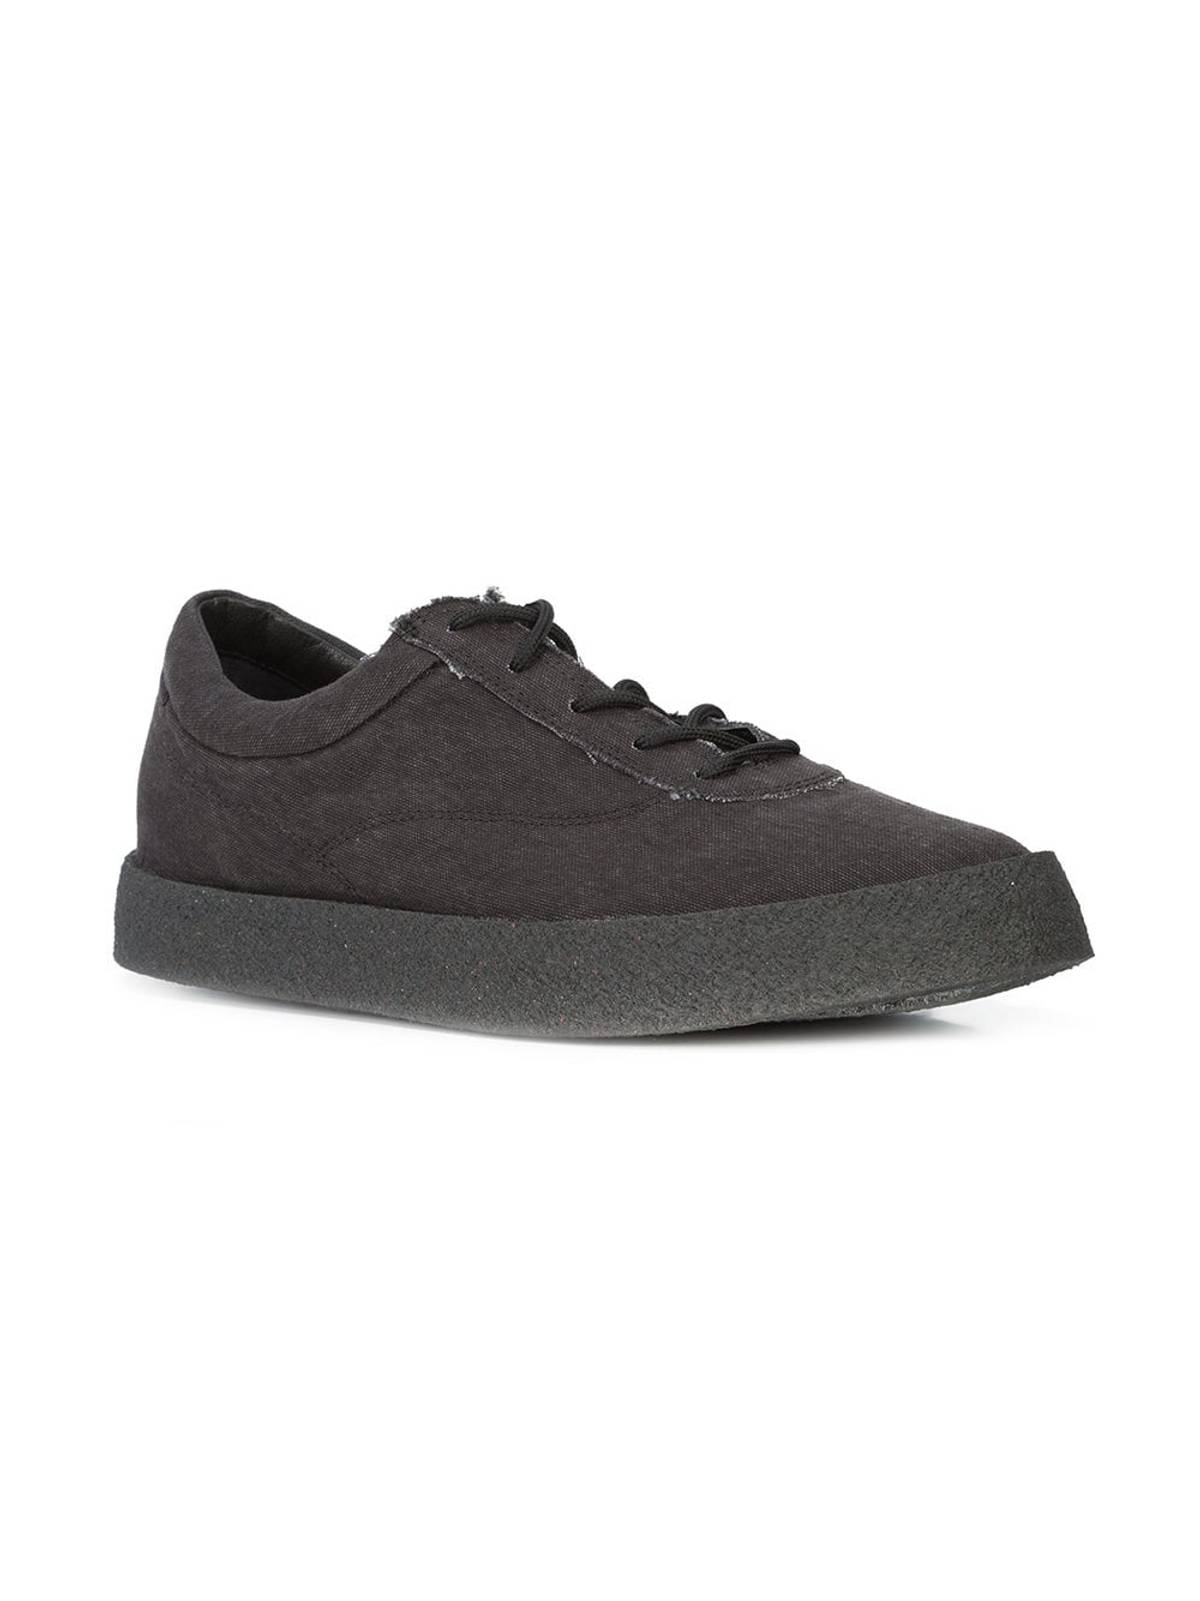 28334790416 Yeezy Season Season6 Yeezy Graphite Washed Canvas Crepe Sneakers ...